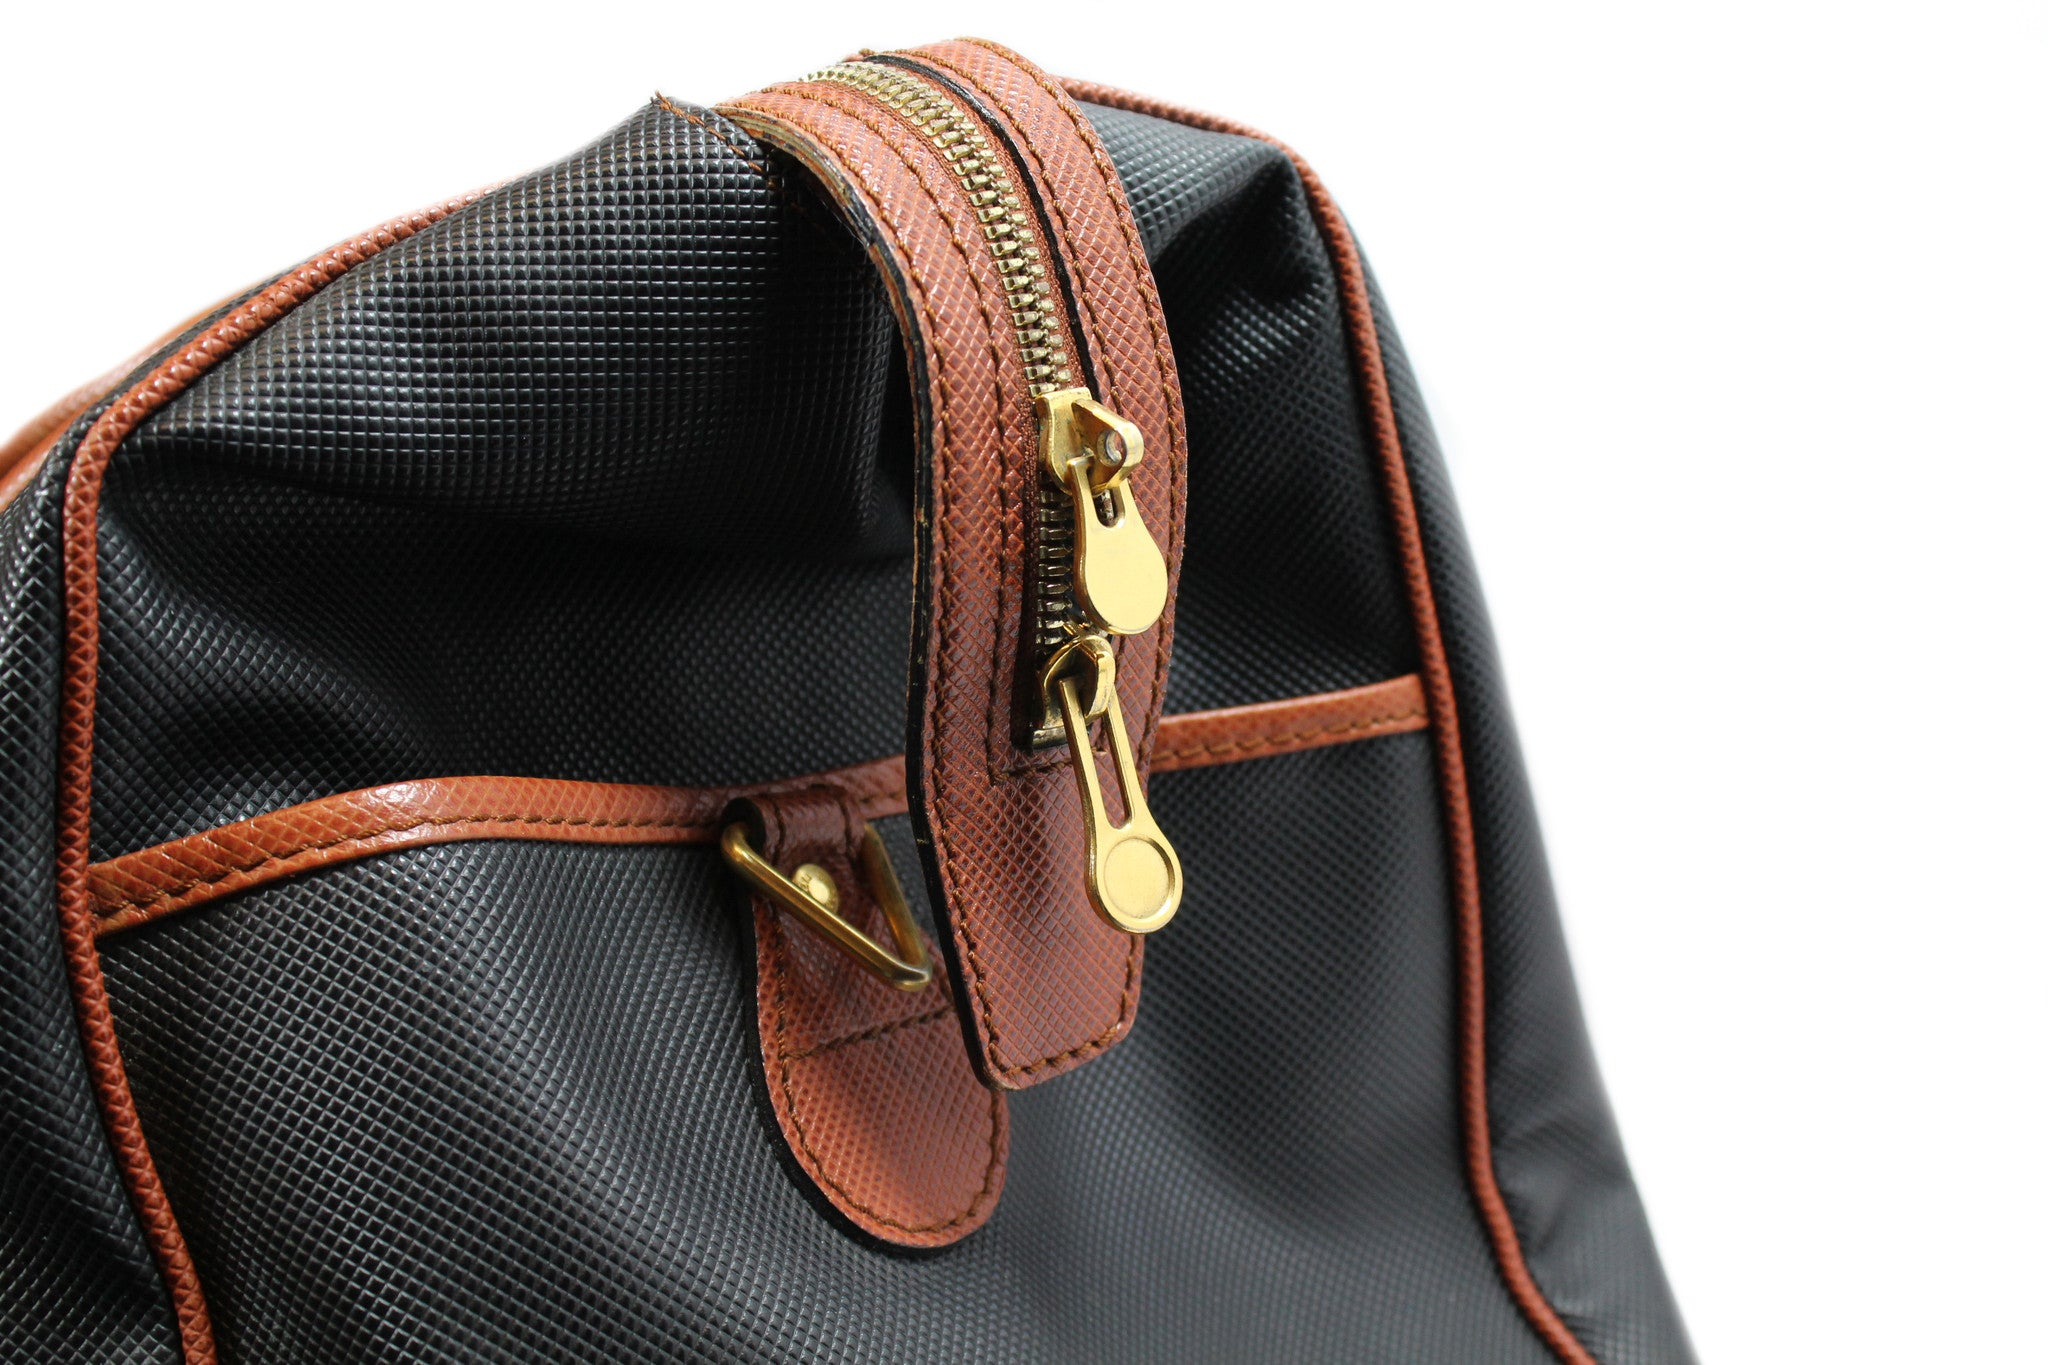 Bottega Veneta Black and Copper Leather Duffle Bag - Encore Consignment - 8